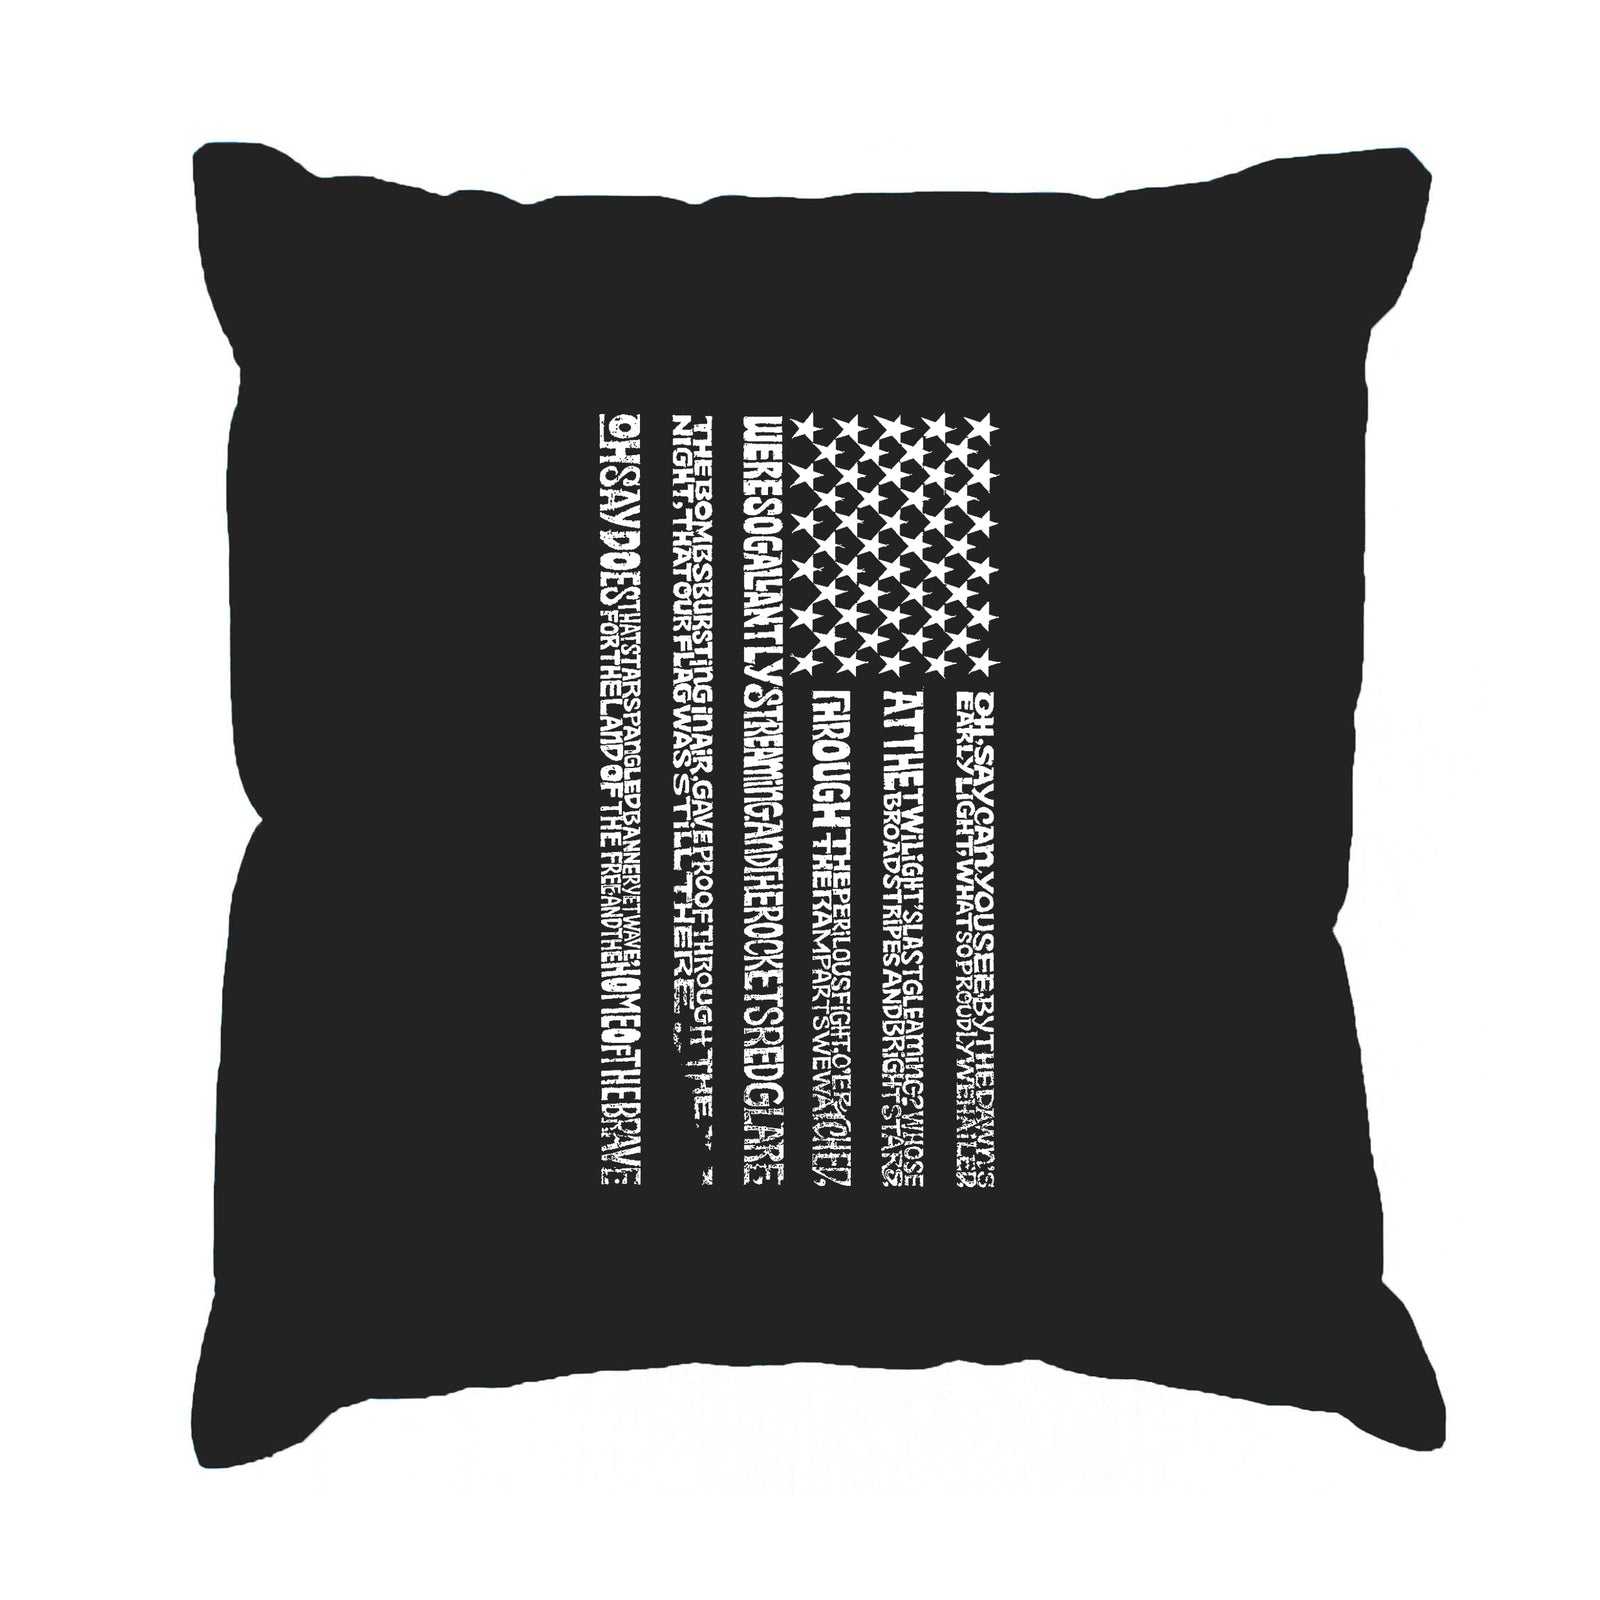 Throw Pillow Cover - Word Art - National Anthem Flag